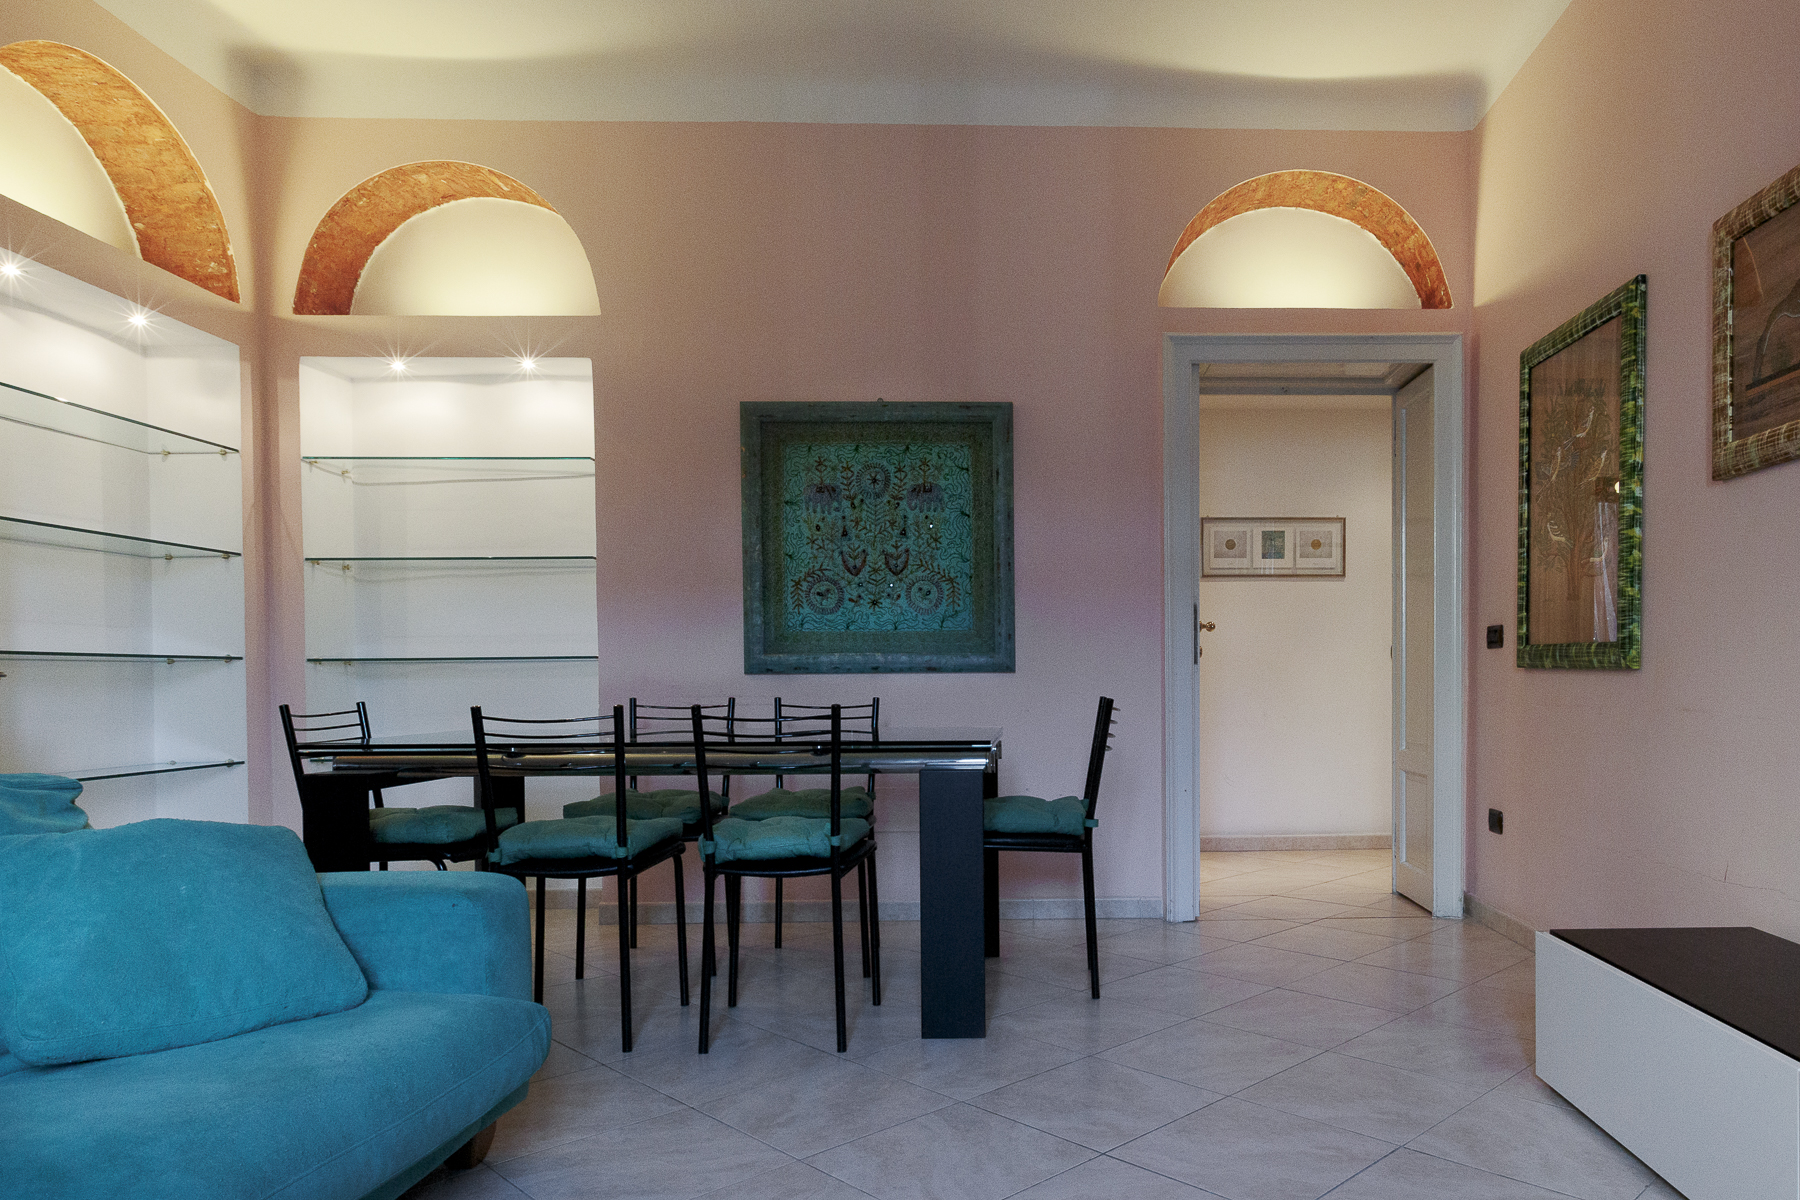 Additional photo for property listing at Refined apartament in historical building Via Broggi Milano, Milan 20123 Italy